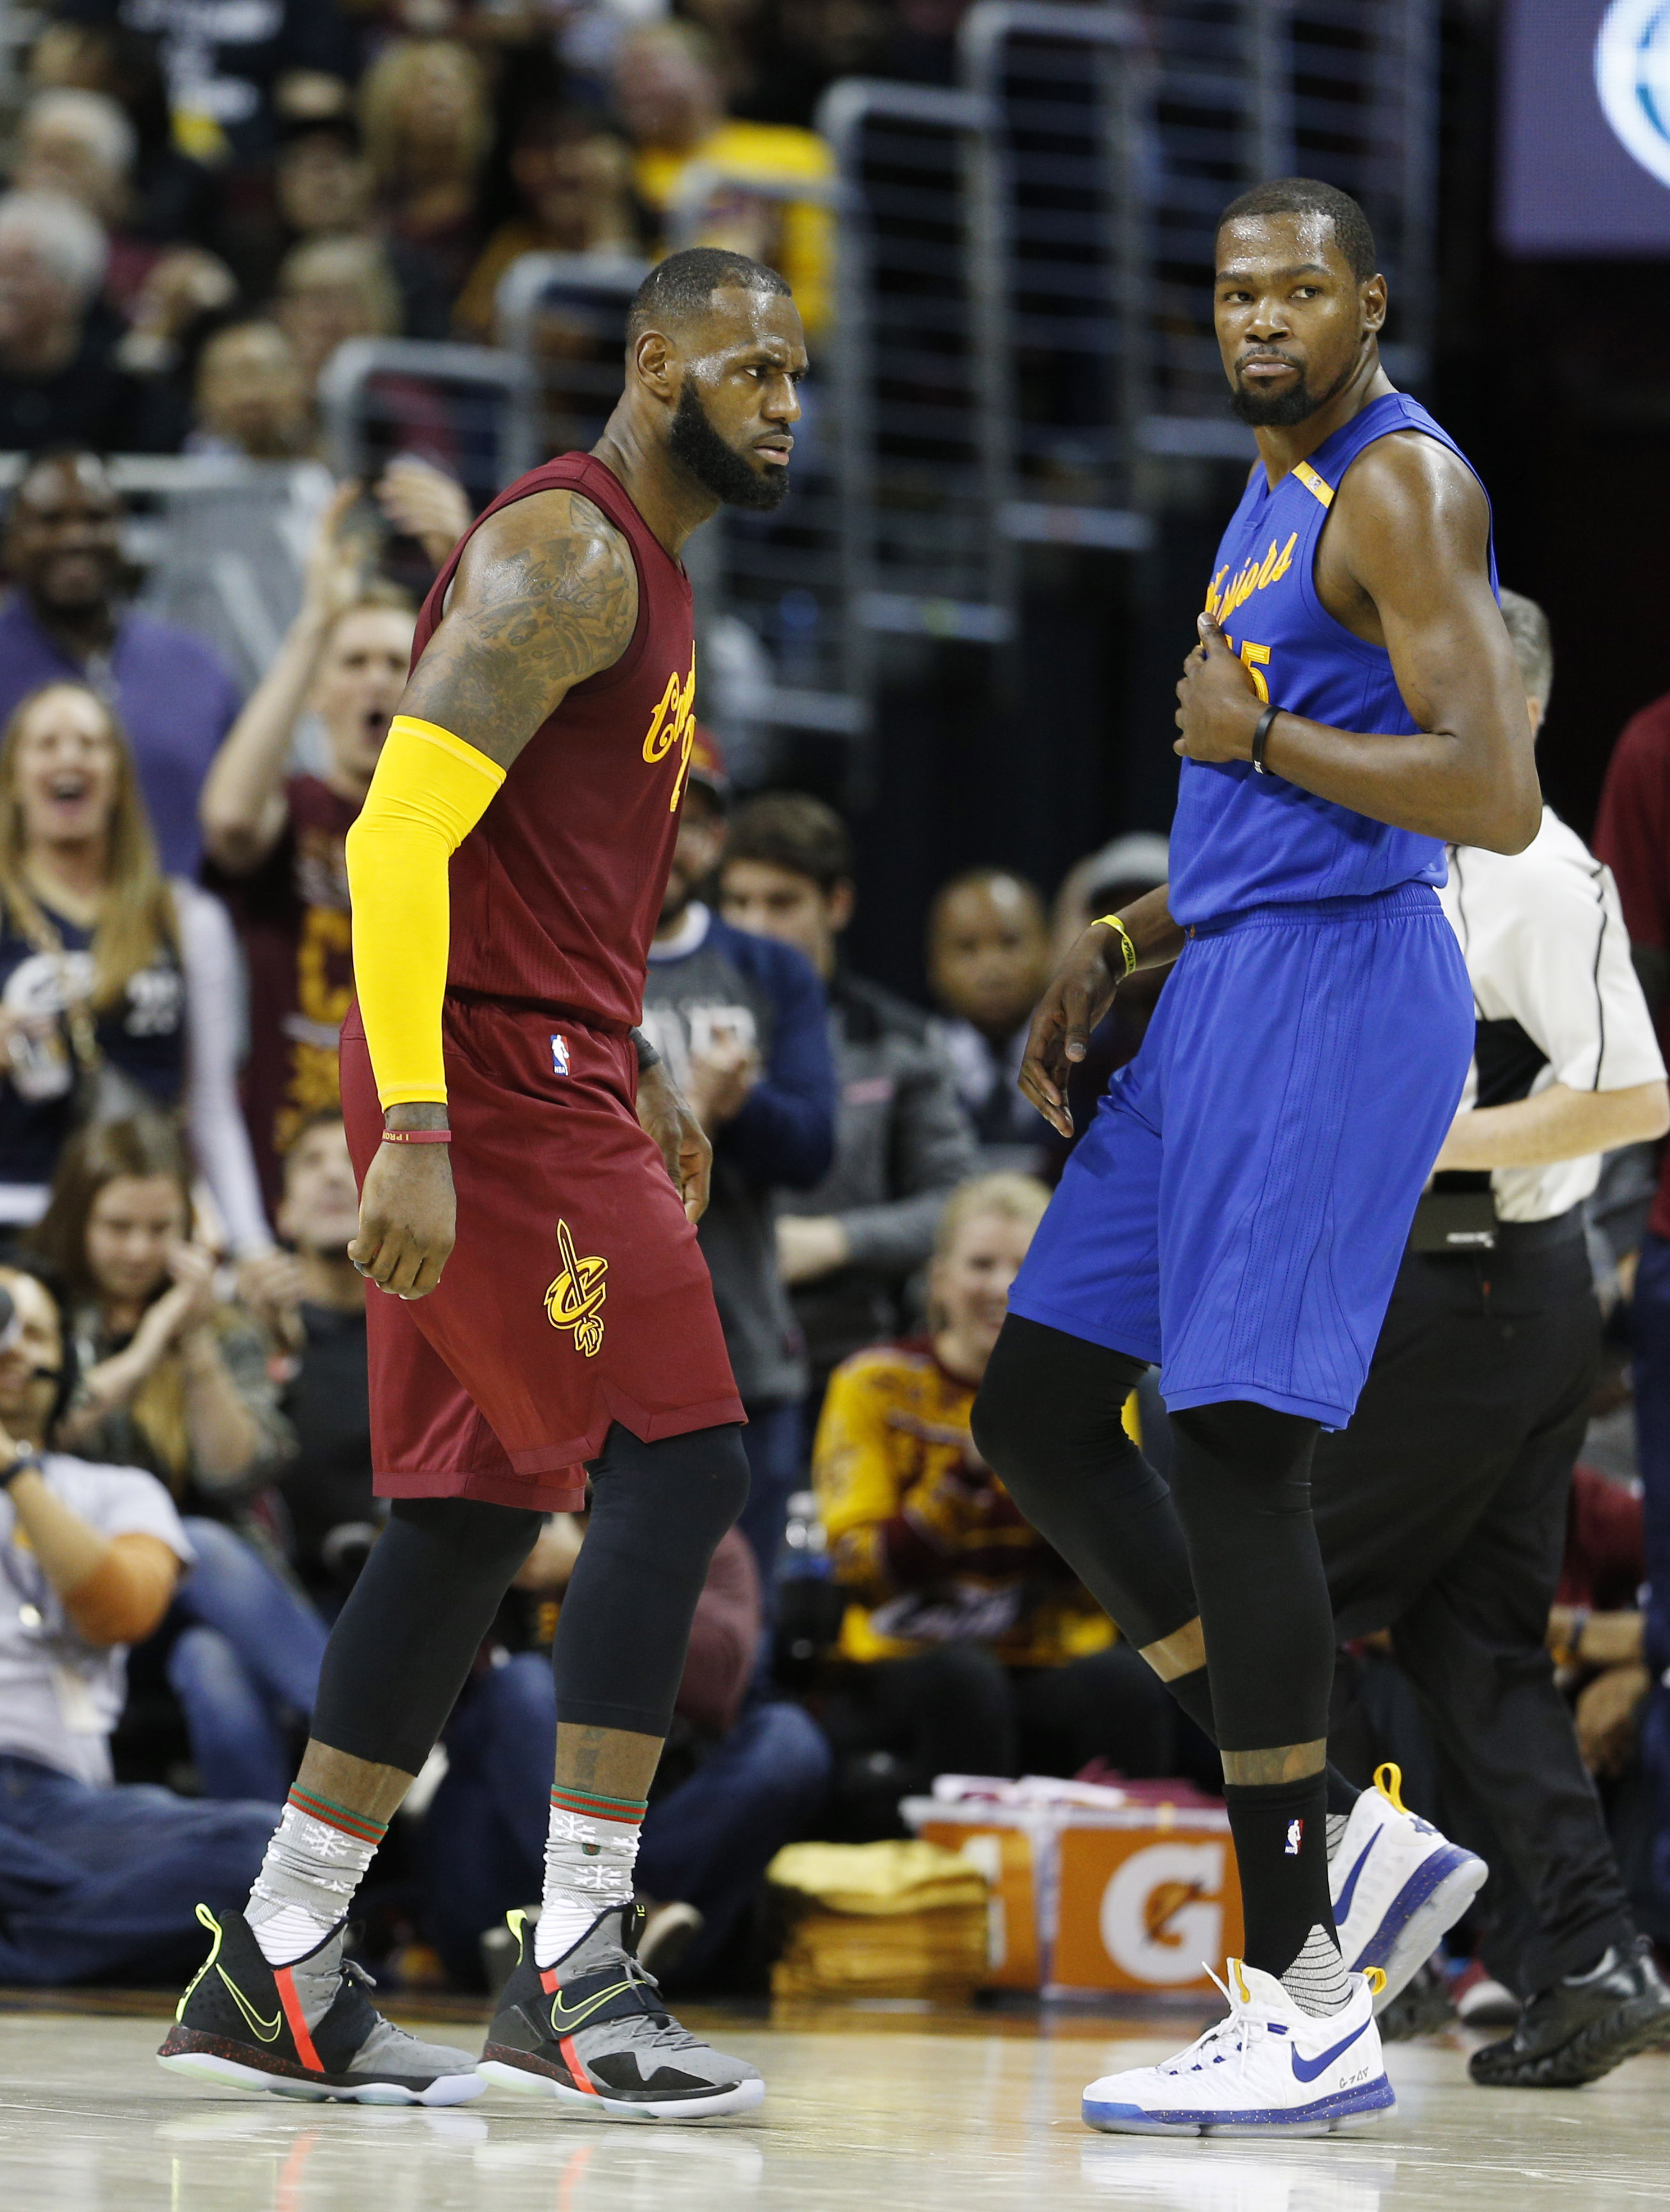 Warriors vs. Cavaliers is the best rivalry in pro sports. We need more like it.